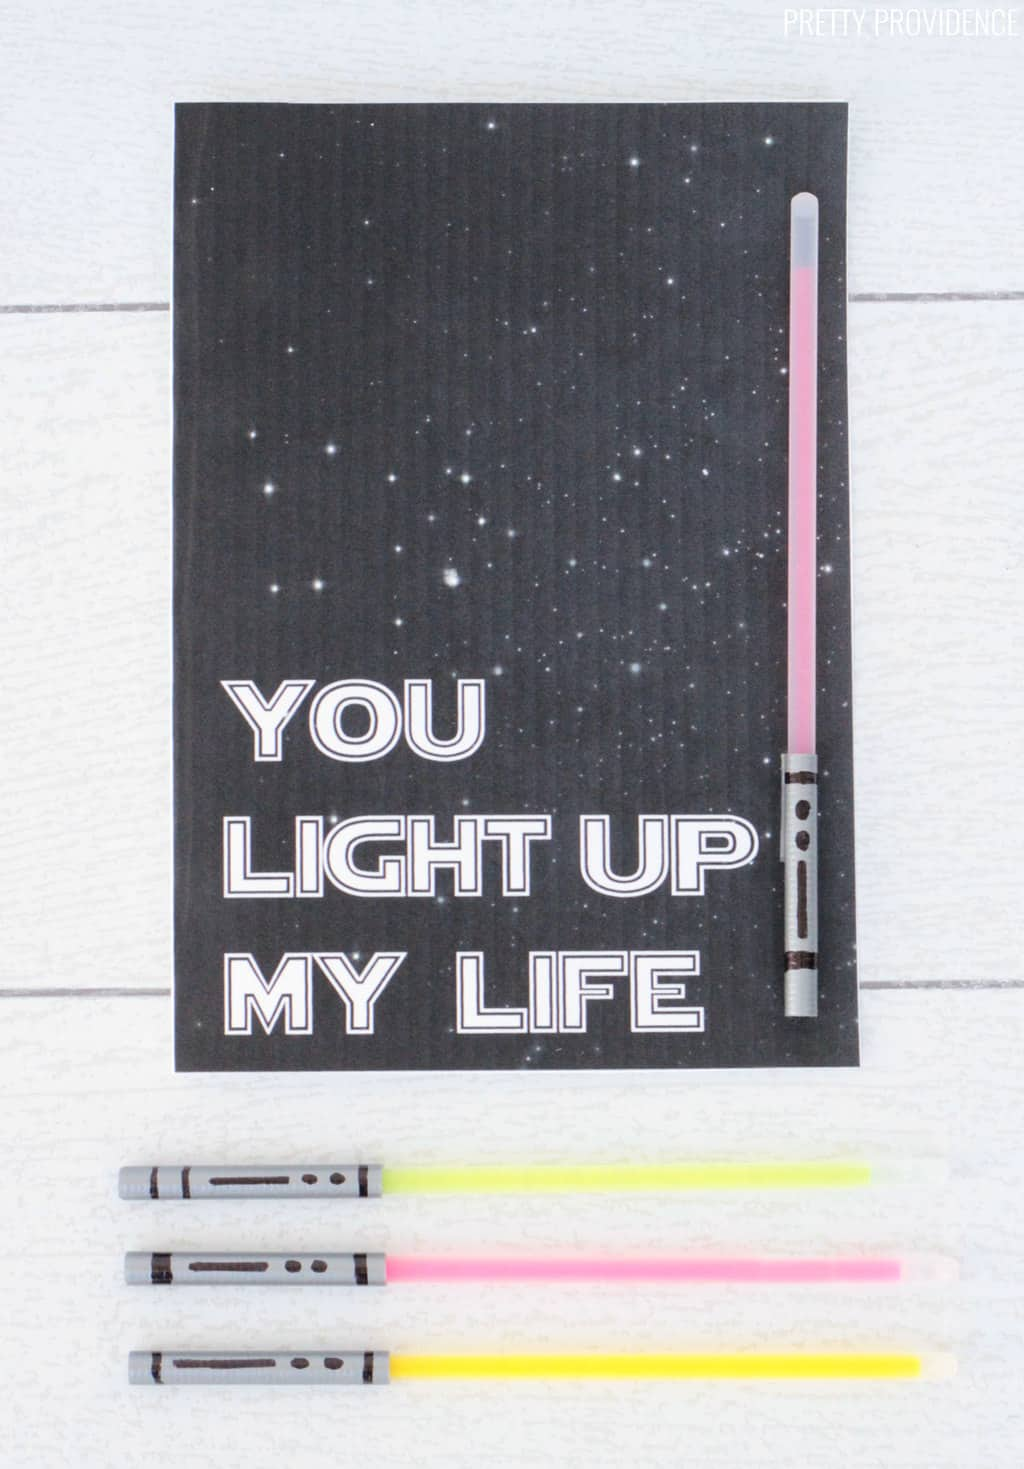 'You light up my life' star wars valentines card for him, with glow stick light saber attached.